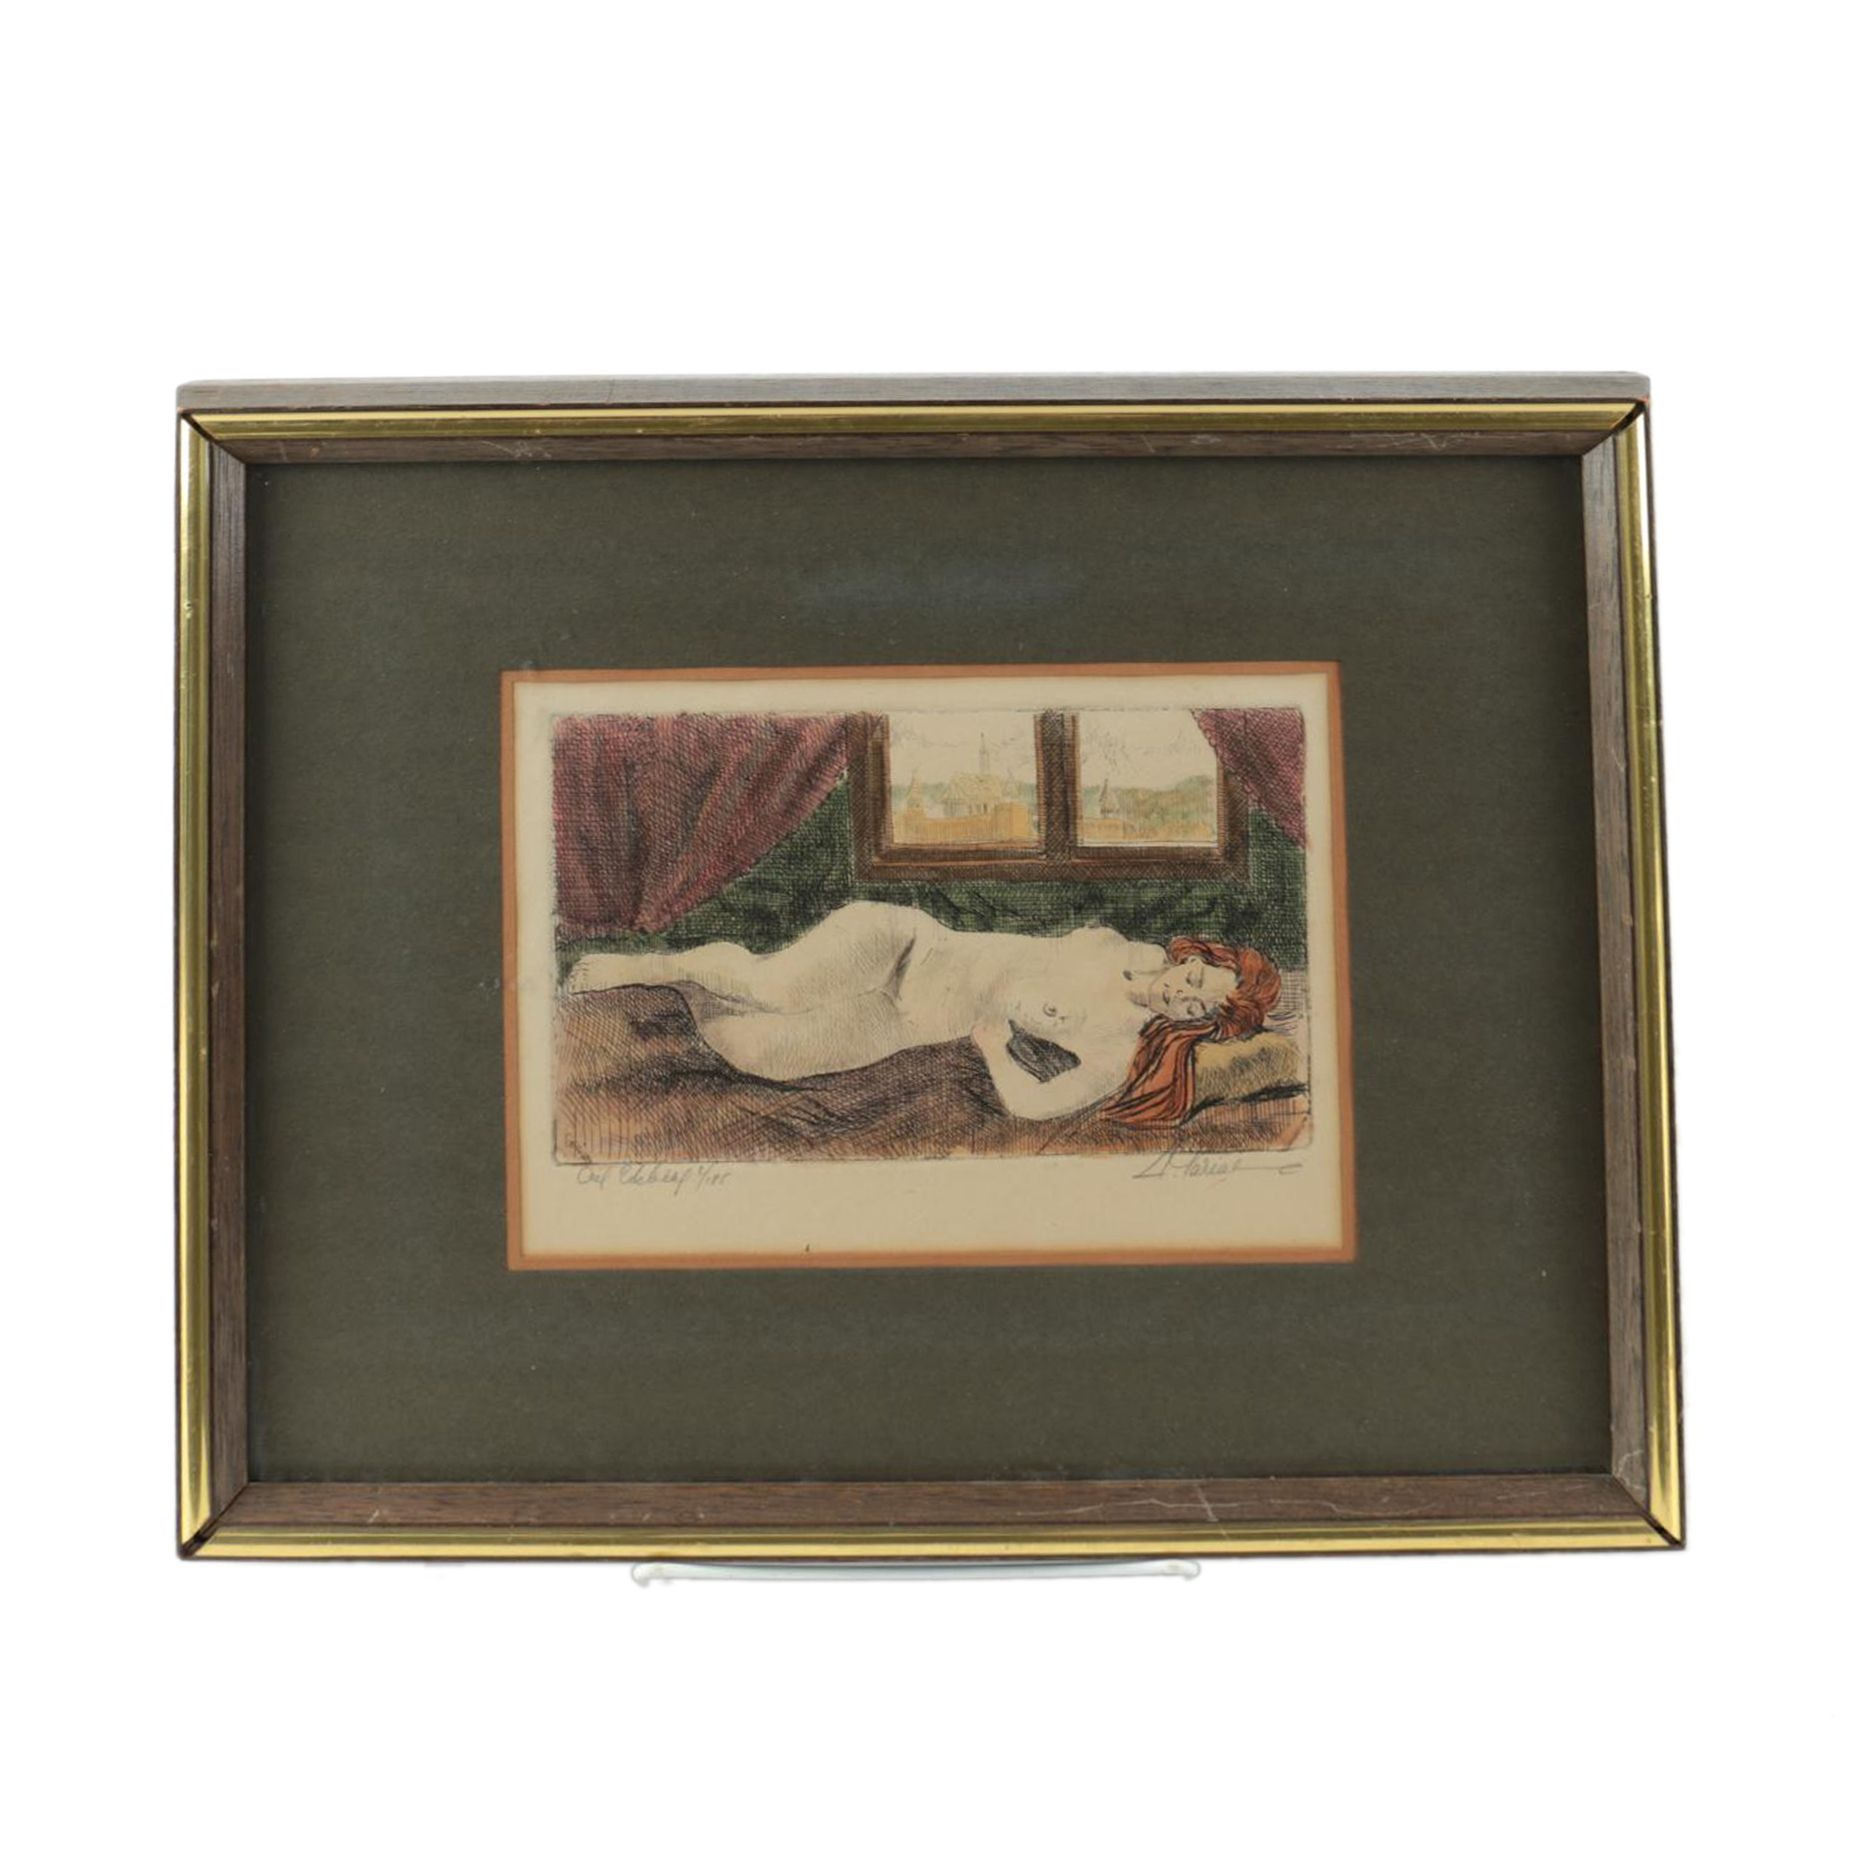 Limited Edition Hand Colored Intaglio Print of a Sleeping Nude